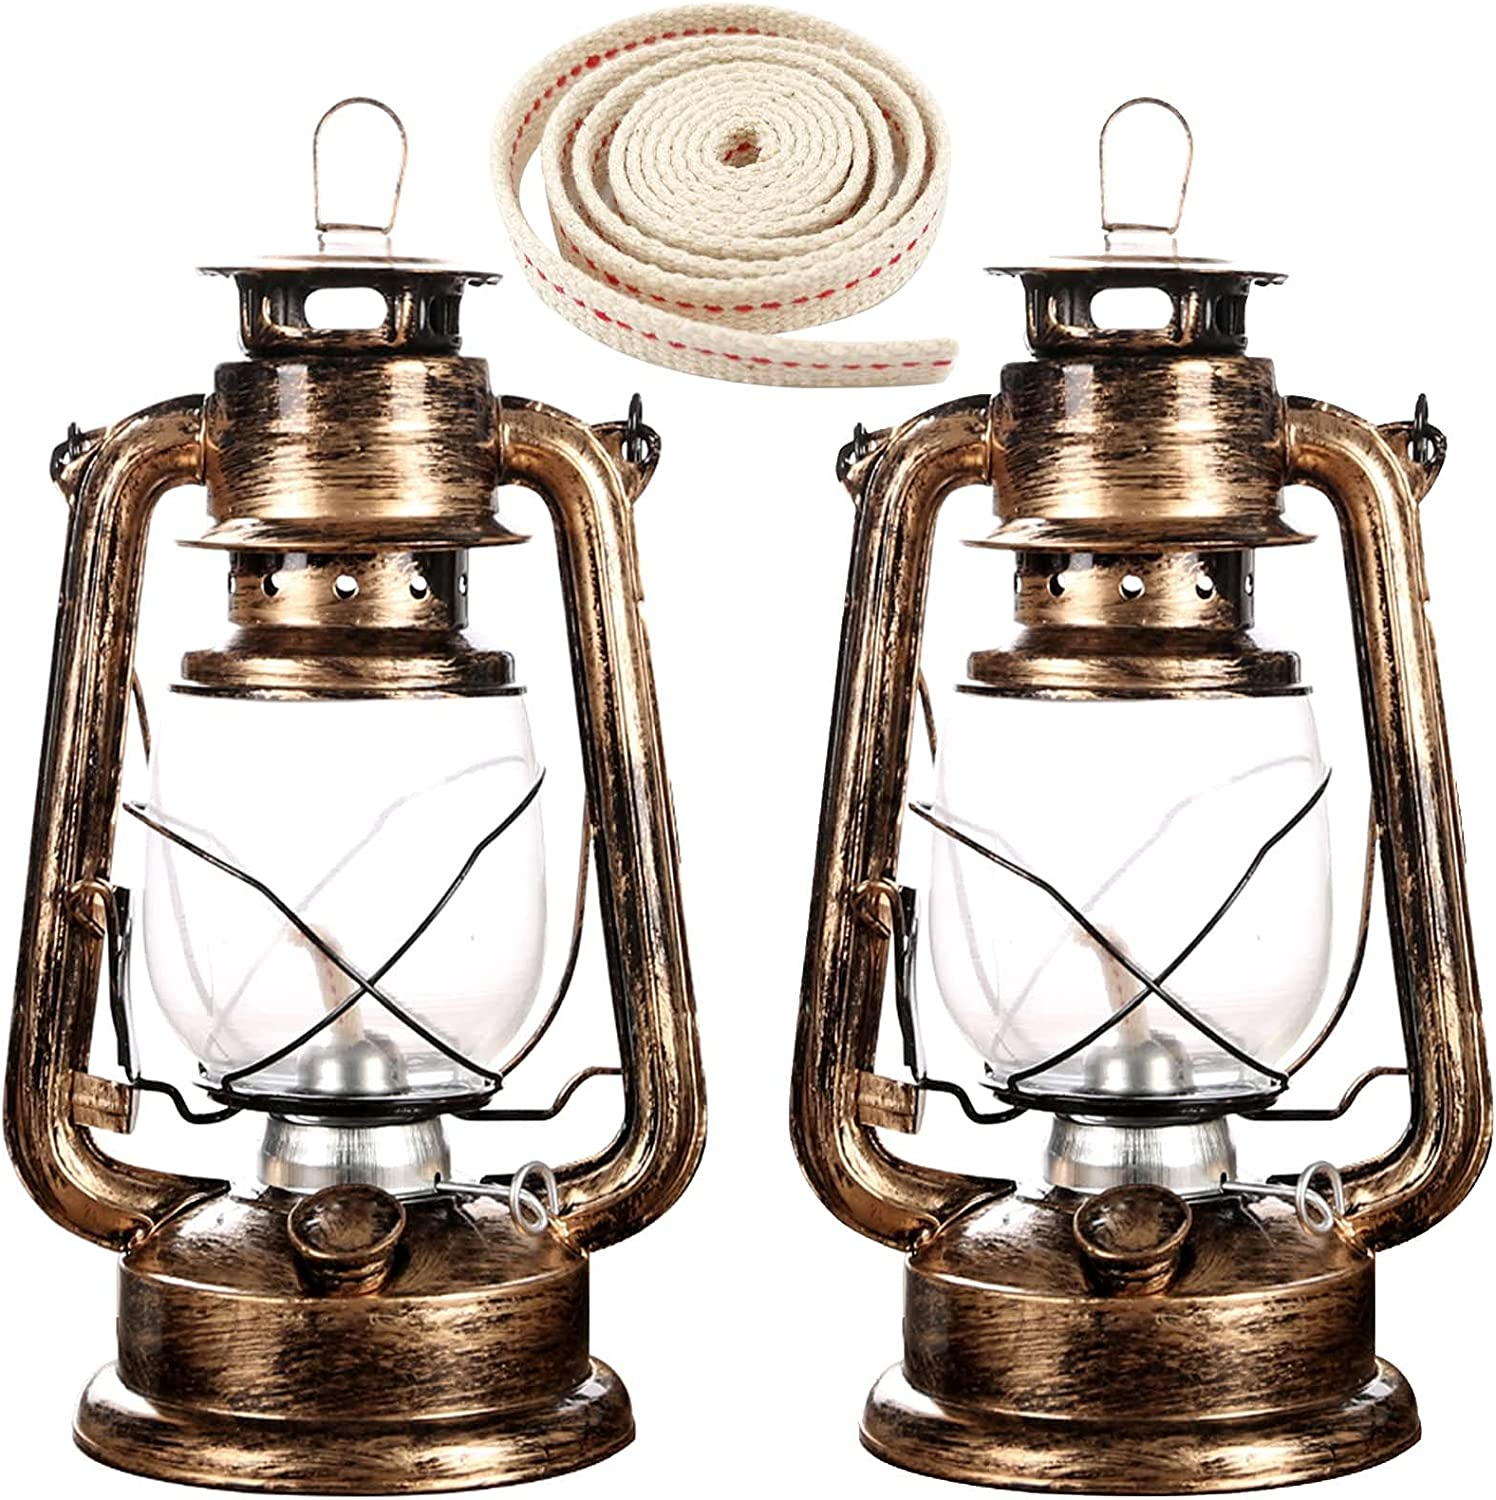 rnuie Rustic Kerosene Factory outlet Lantern 2 Pack of Lamp Oil Year-end annual account 1 Roll and